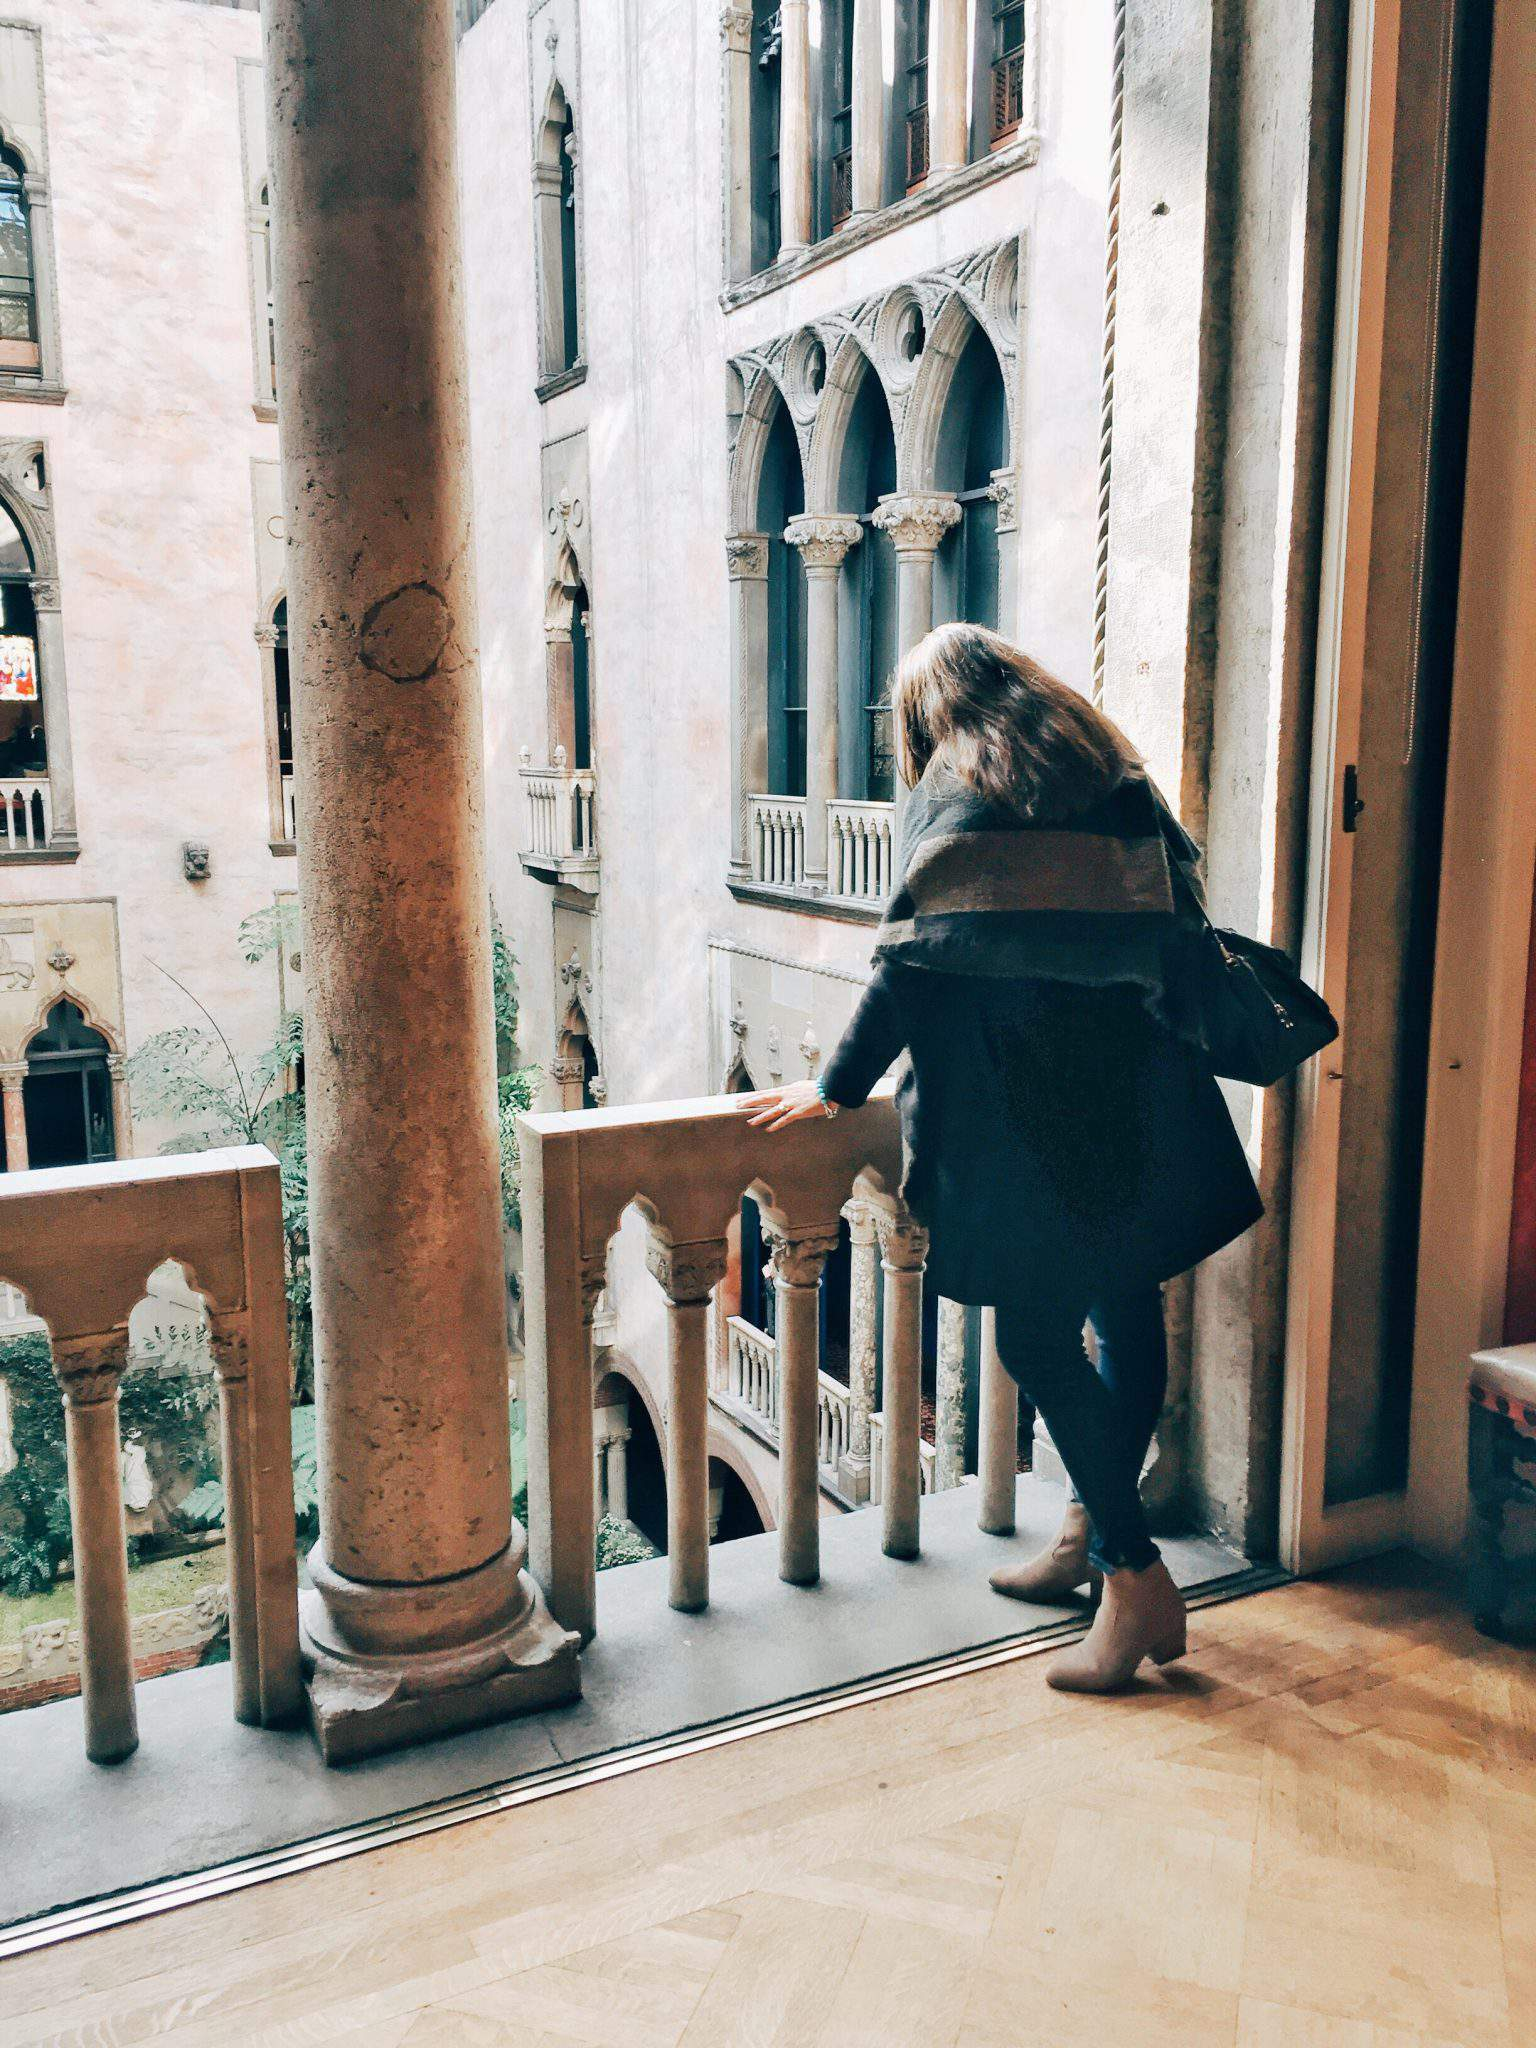 Part 2 – Our Boston Weekend Getaway- What We Saw